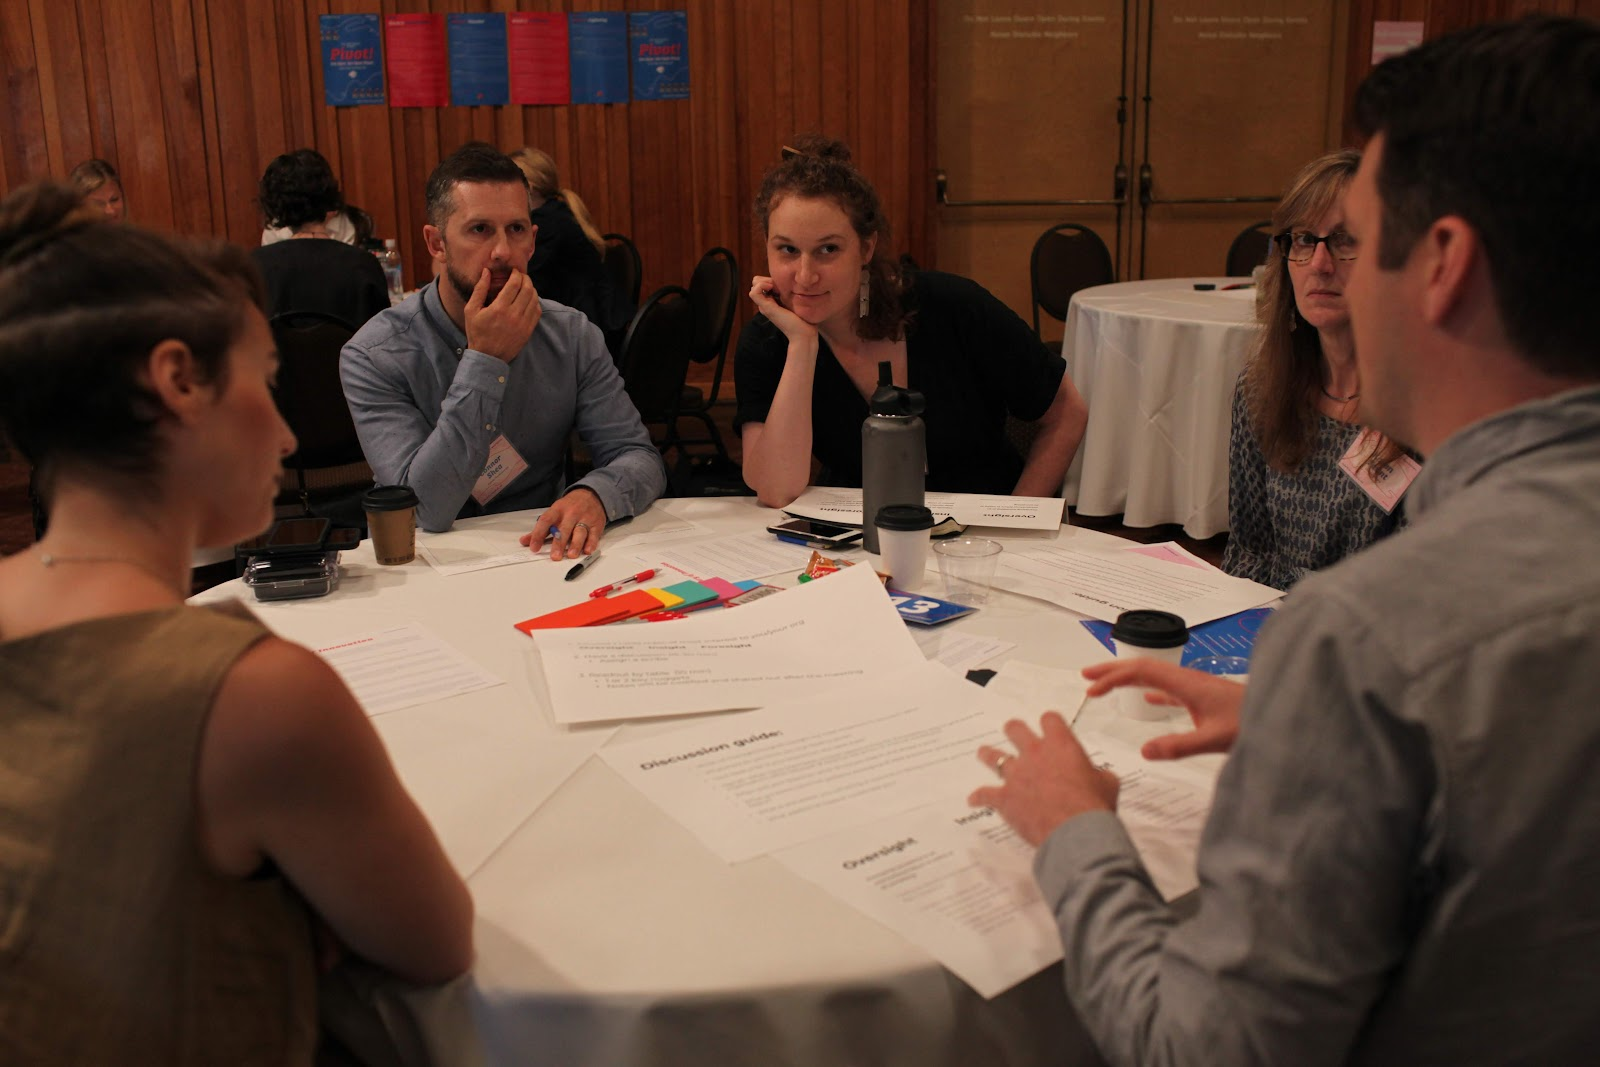 A group of six ILN attendees meet together around a table.